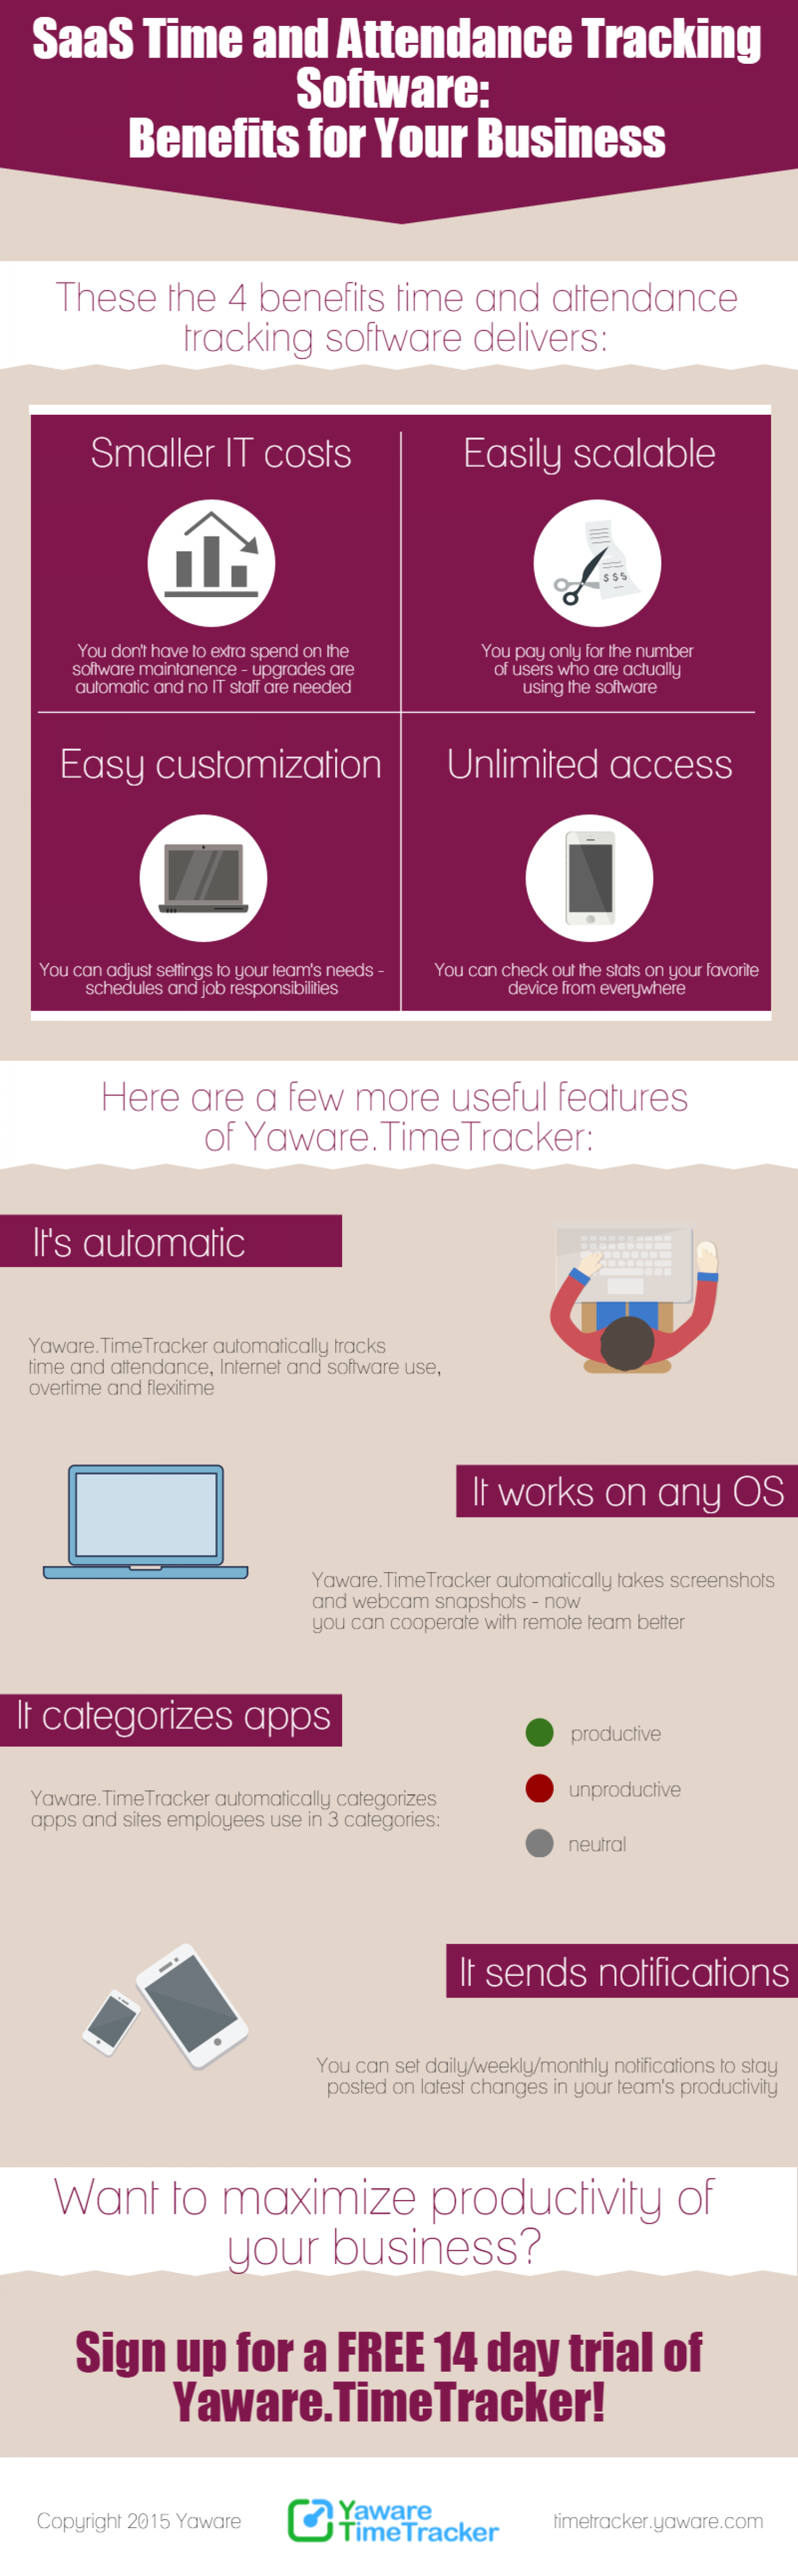 saas time and attendance tracking software benefits for your